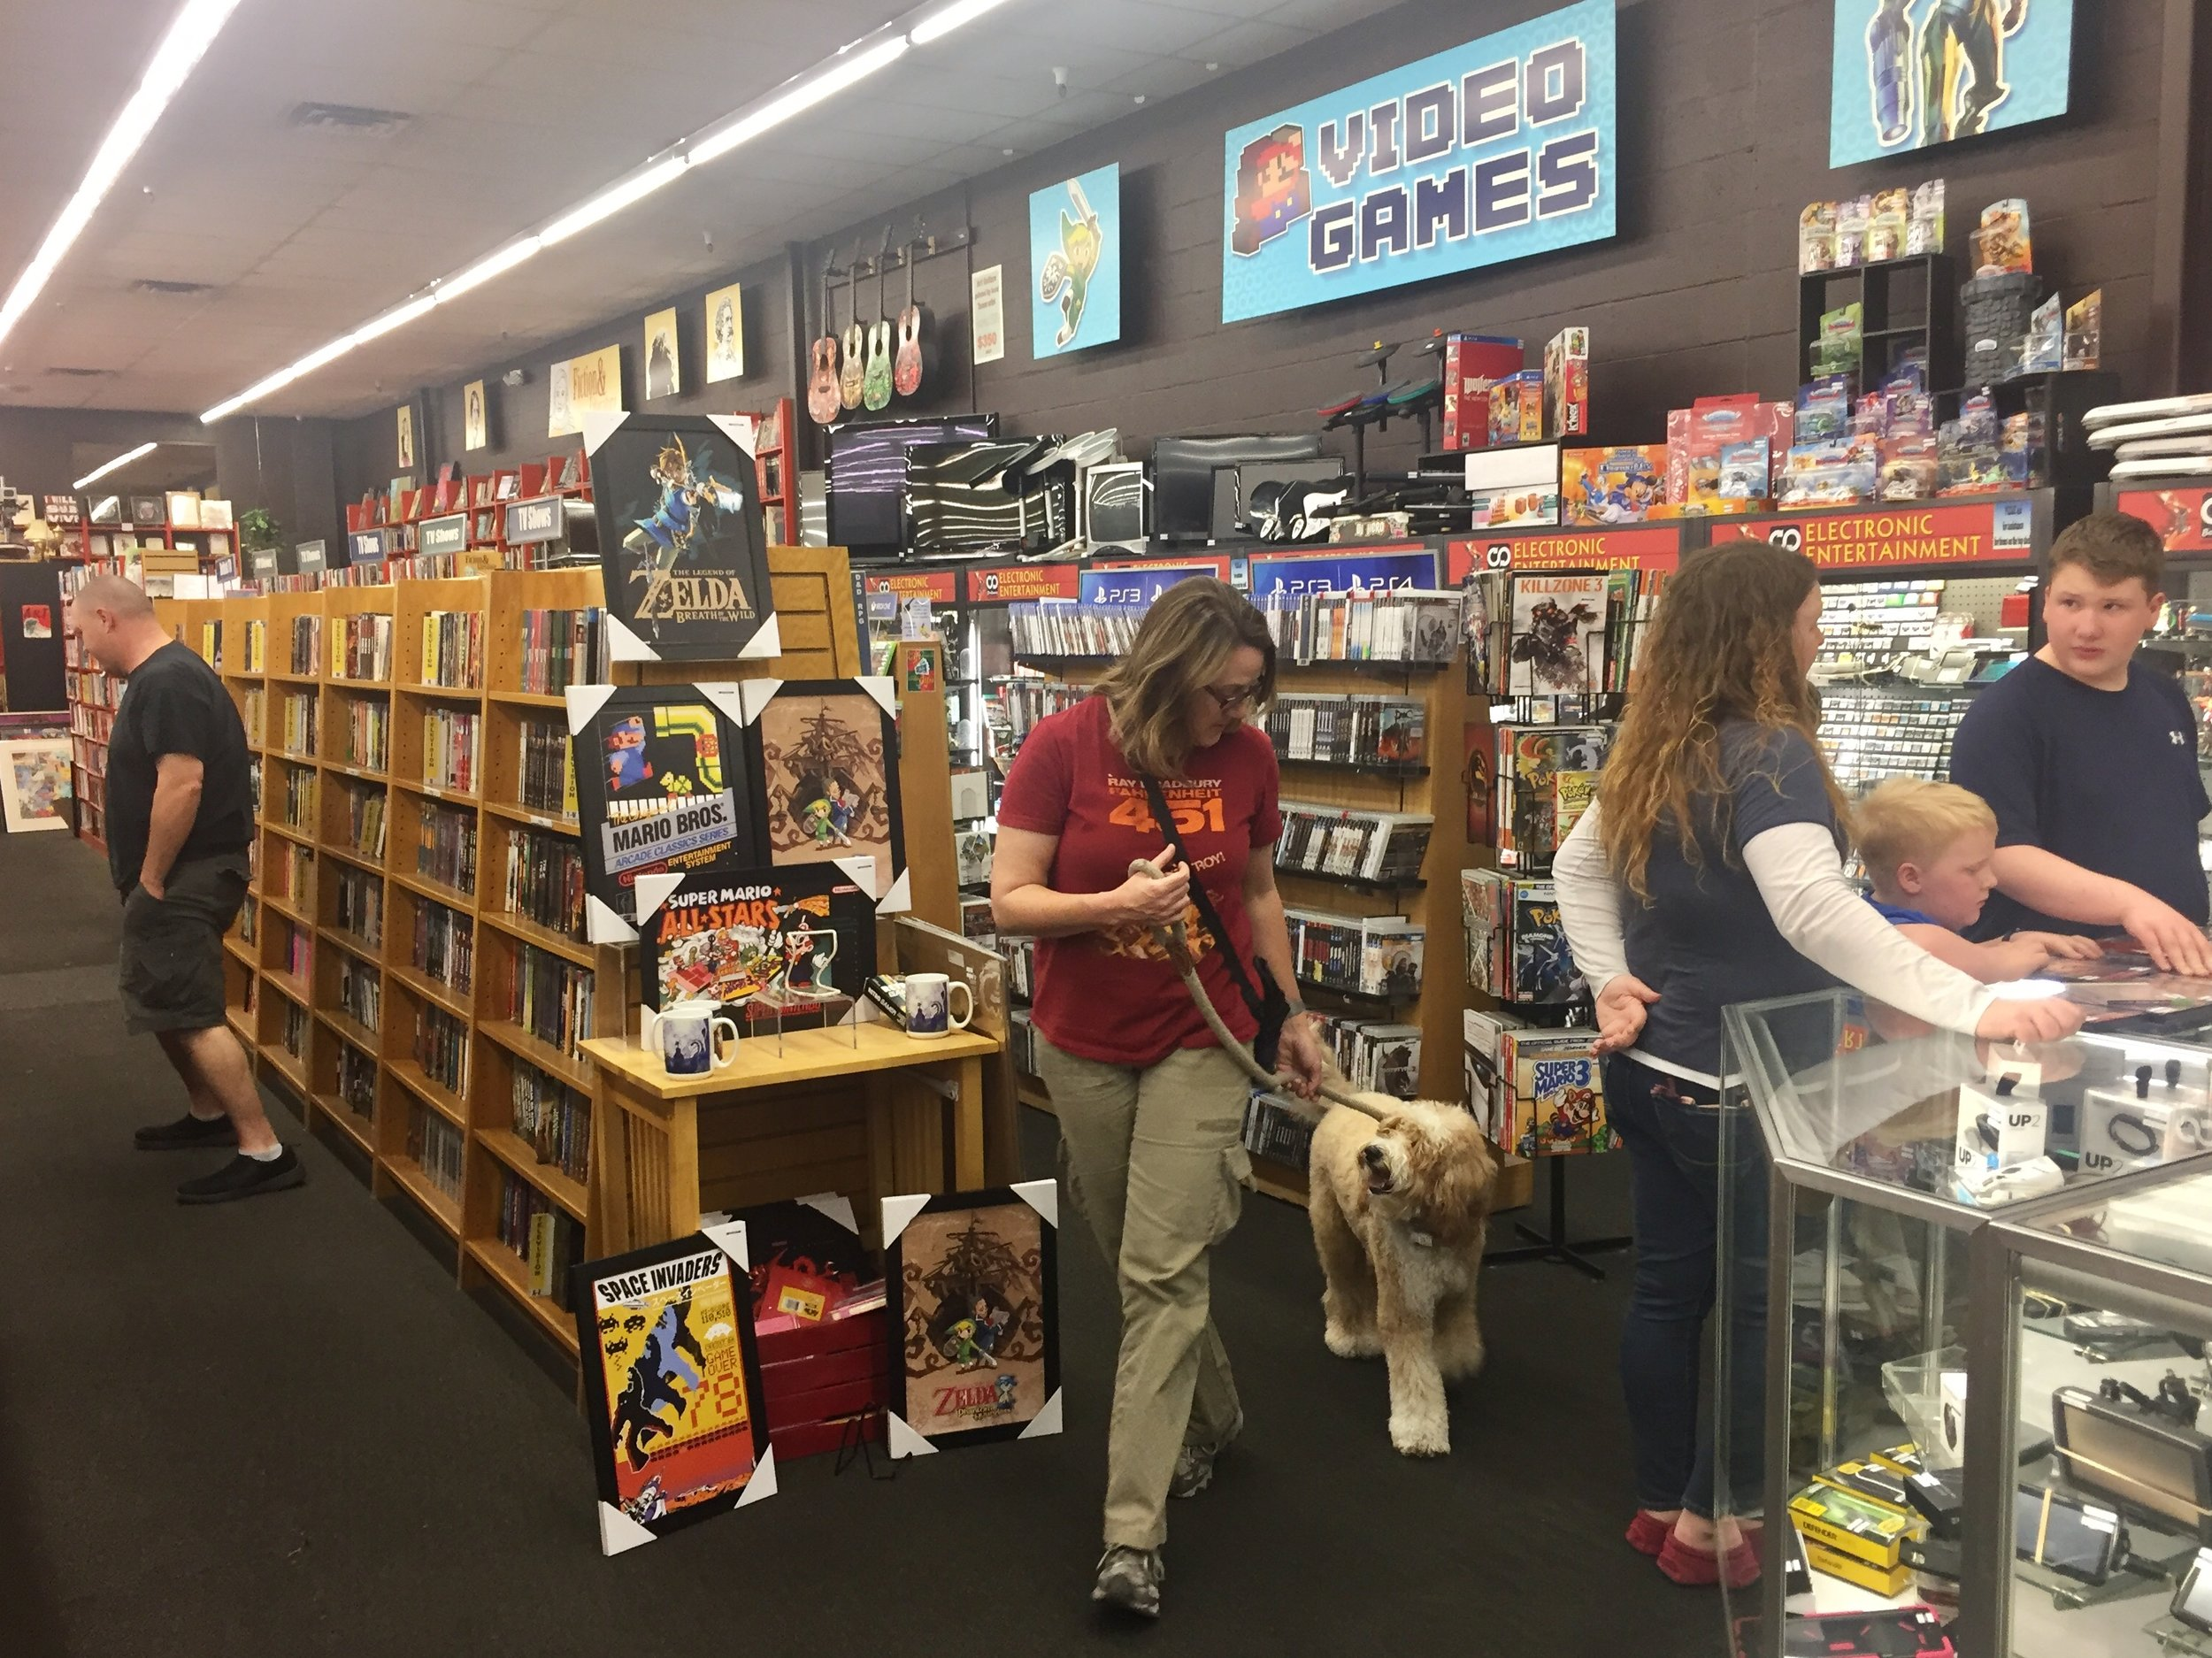 Bernie McSquare and I practice walking through crowds at Booksmans Used Bookstore in Tucson, Arizona. This dog-friendly store is one of our regular destinations for practicing CGC skills.